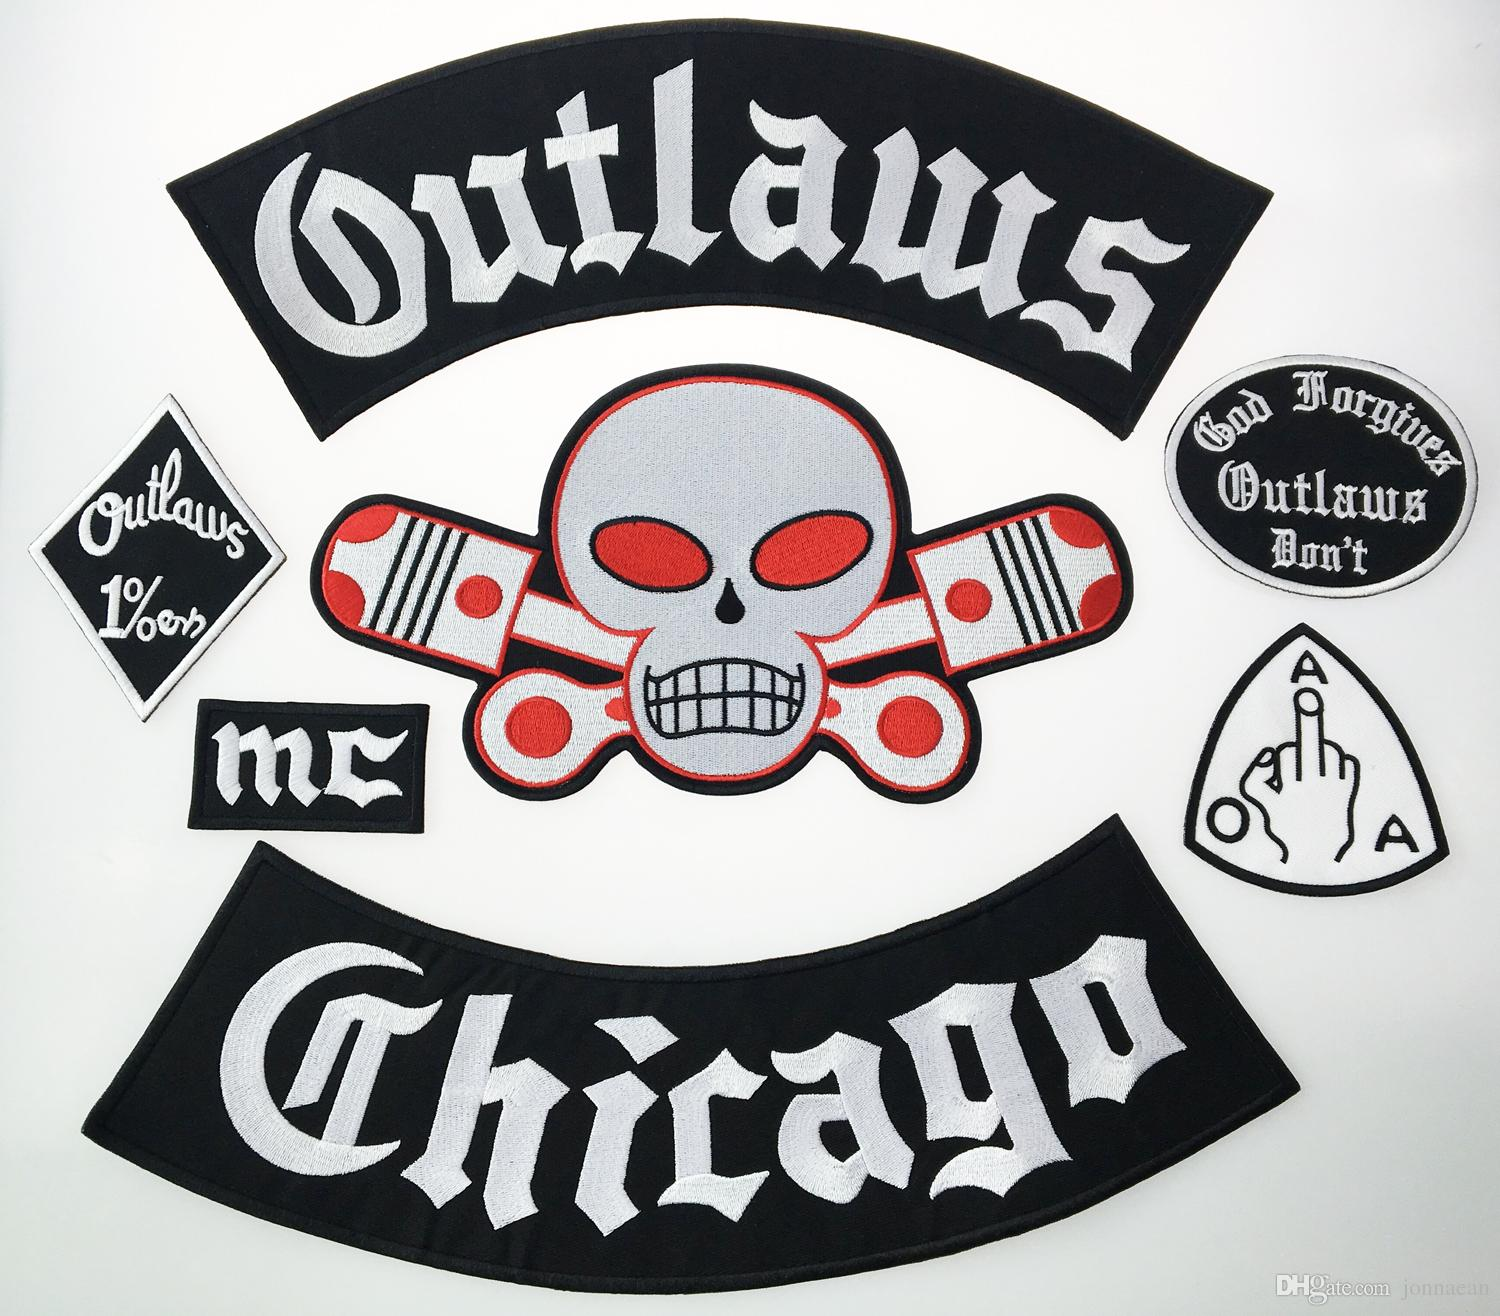 Hot Sale! Outlaw Chicago Forgives Embroidered Iron On Patches Big Size for Full Back Jacket Rider Biker Patch